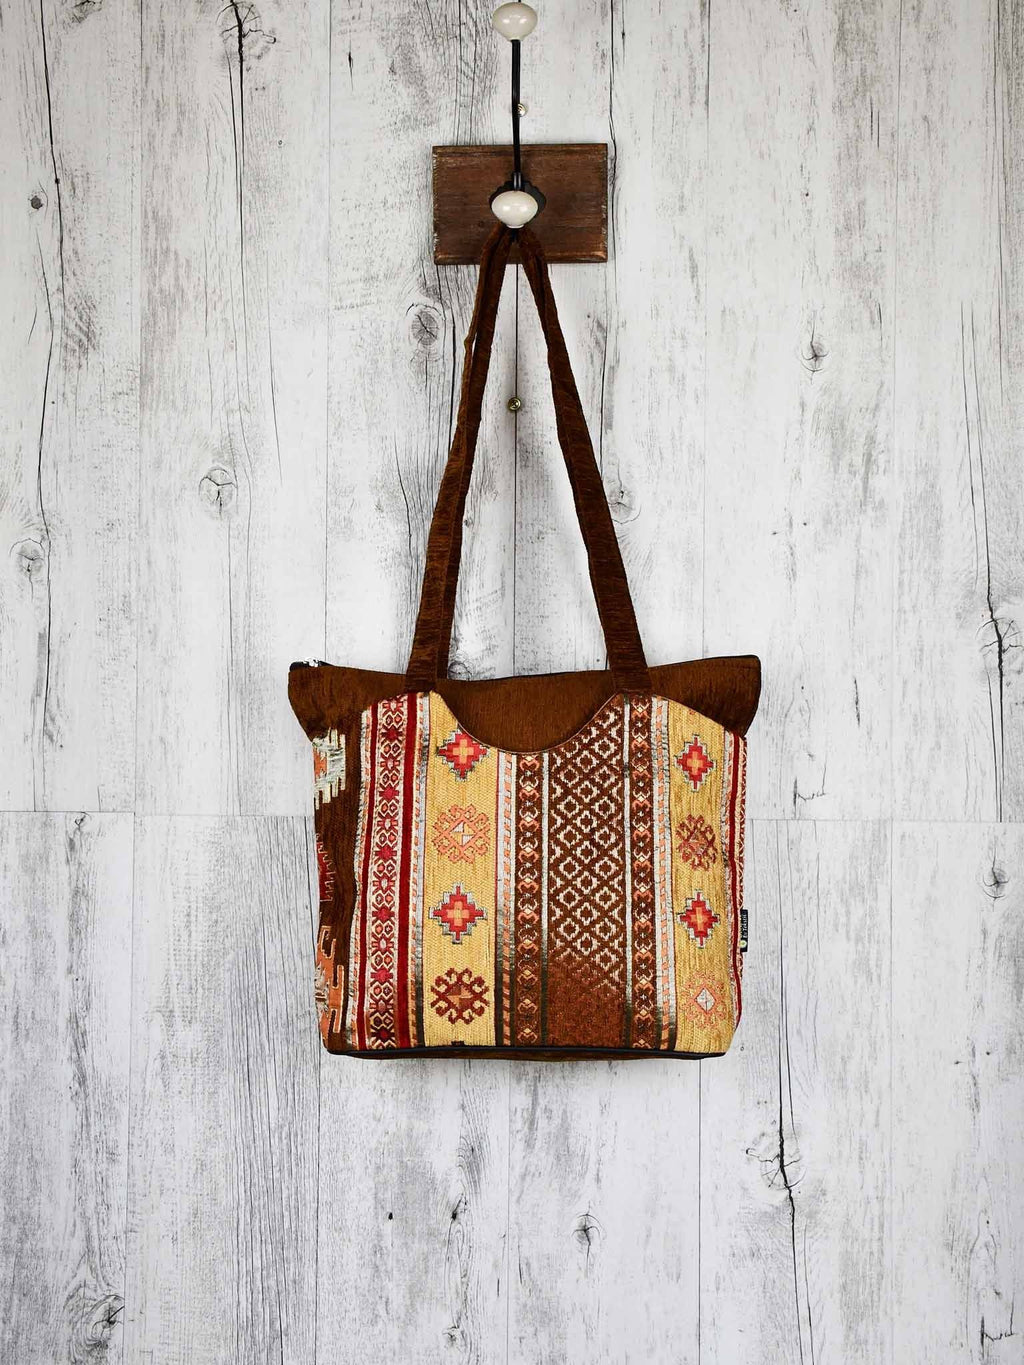 Turkish Handbag Tote Aztec Brown Textile Sydney Grand Bazaar